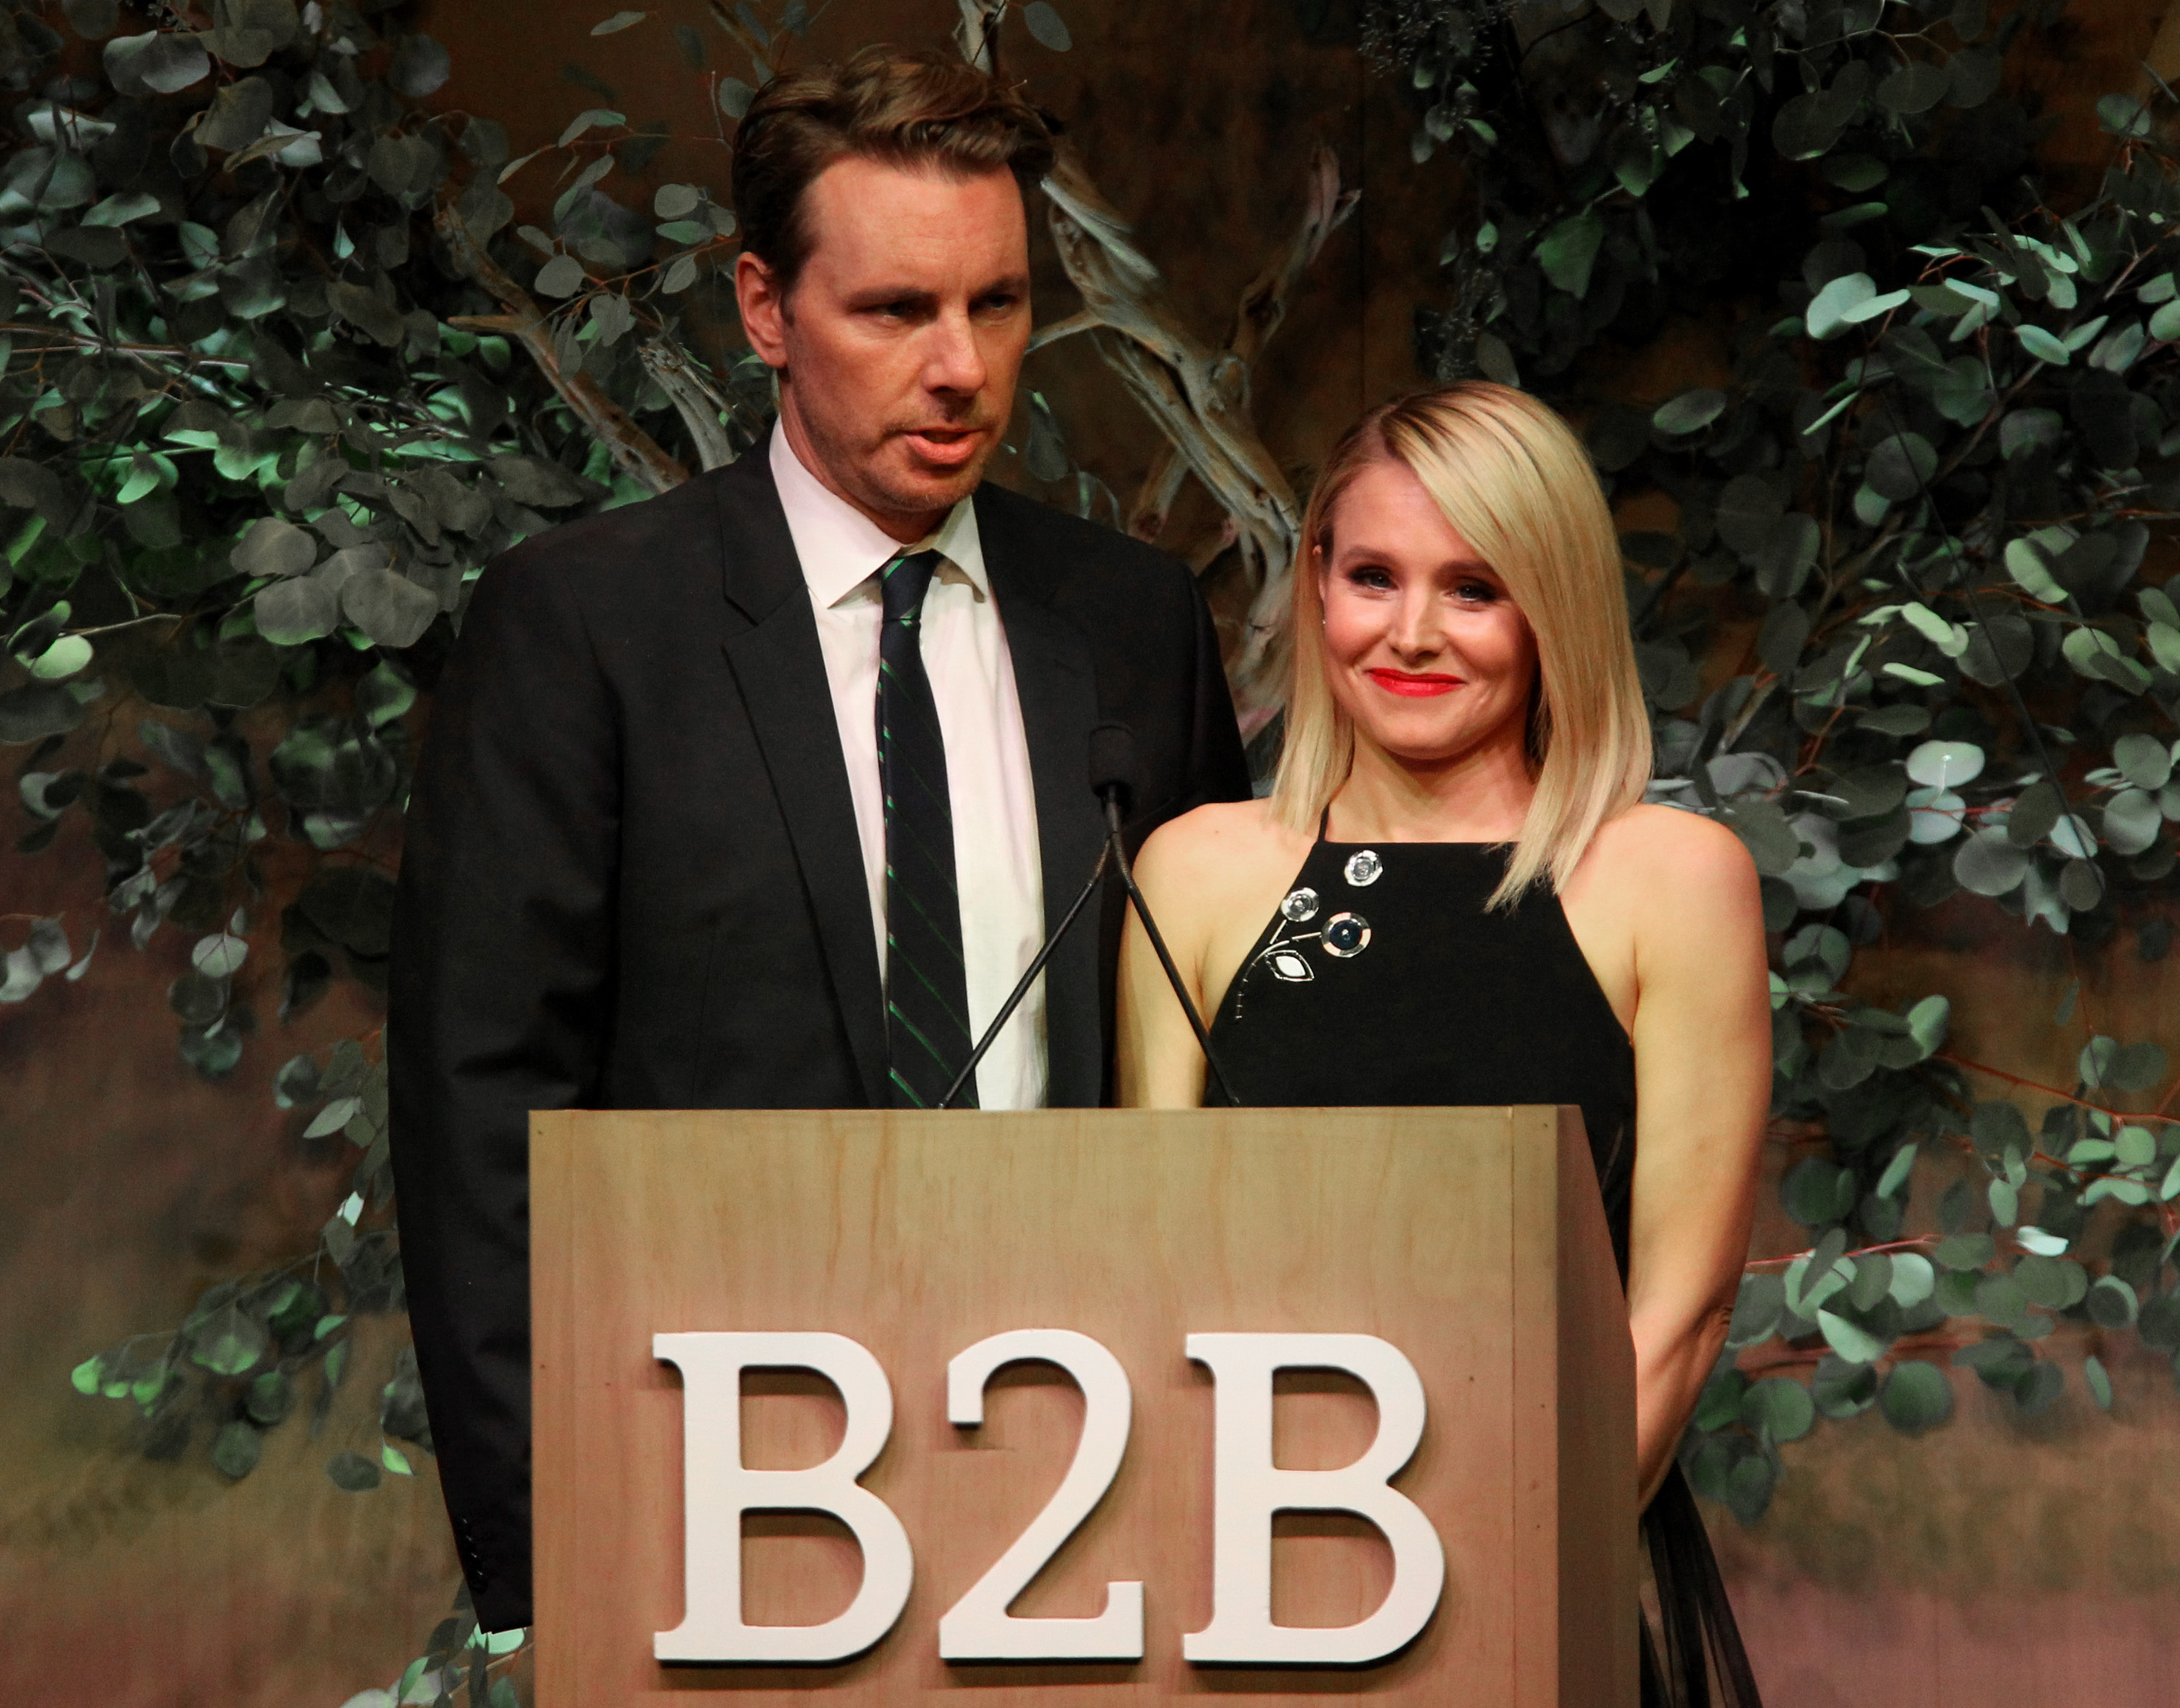 Actors Dax Shepard and Kristen Bell speaks onstage during the Fifth Annual Baby2Baby Gala, Presented By John Paul Mitchell Systems at 3LABS on November 12, 2016 in Culver City, California. (Photo by Tommaso Boddi/Getty Images for Baby2Baby)